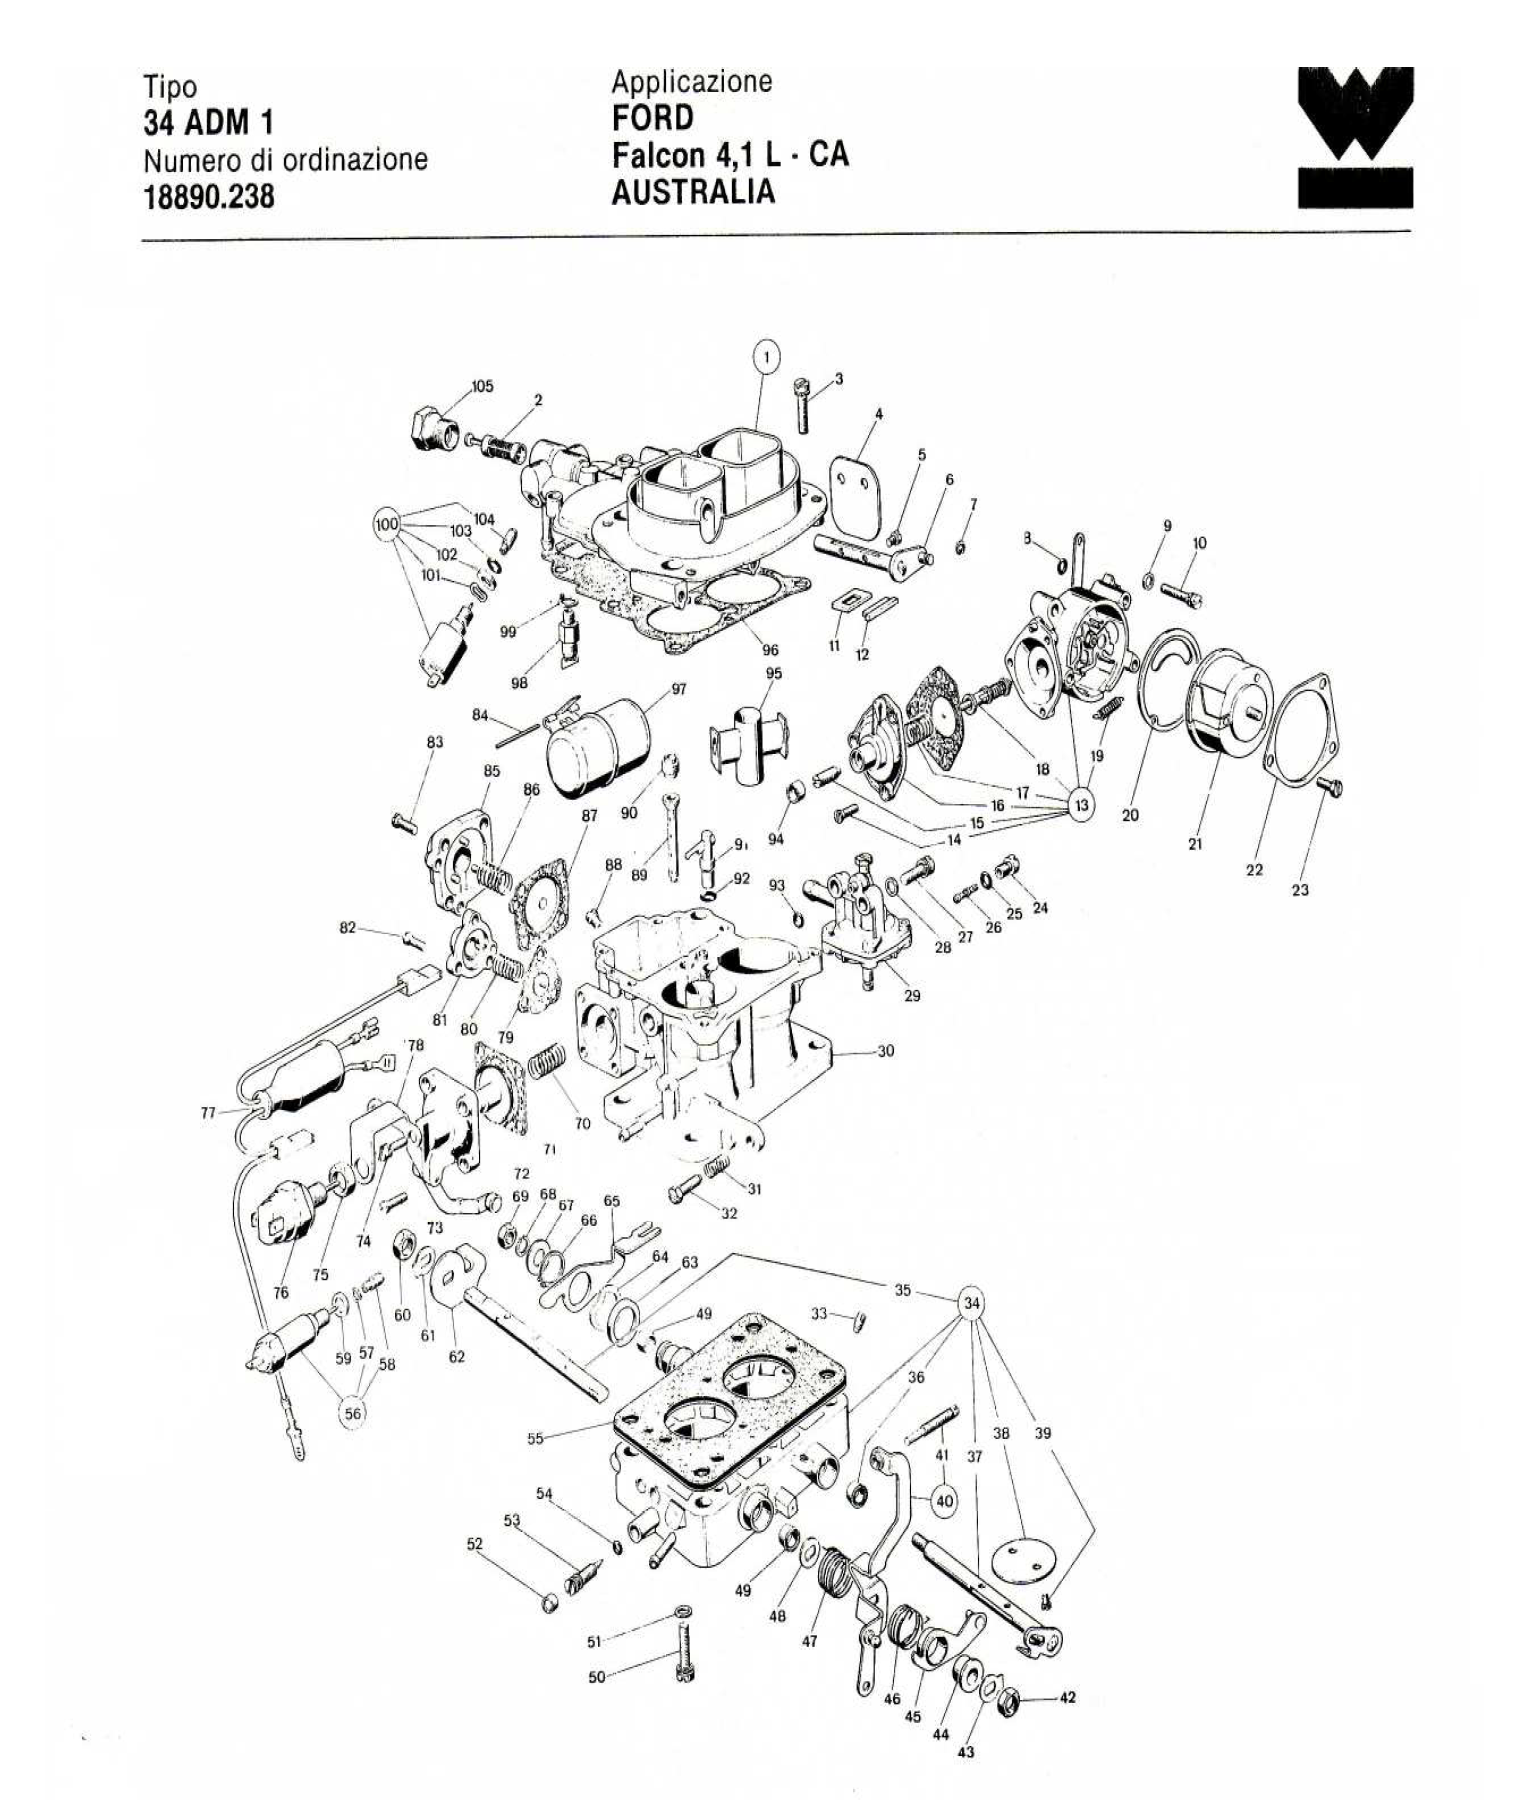 WEBER 34ADM 1 Parts Diagram 1a.png